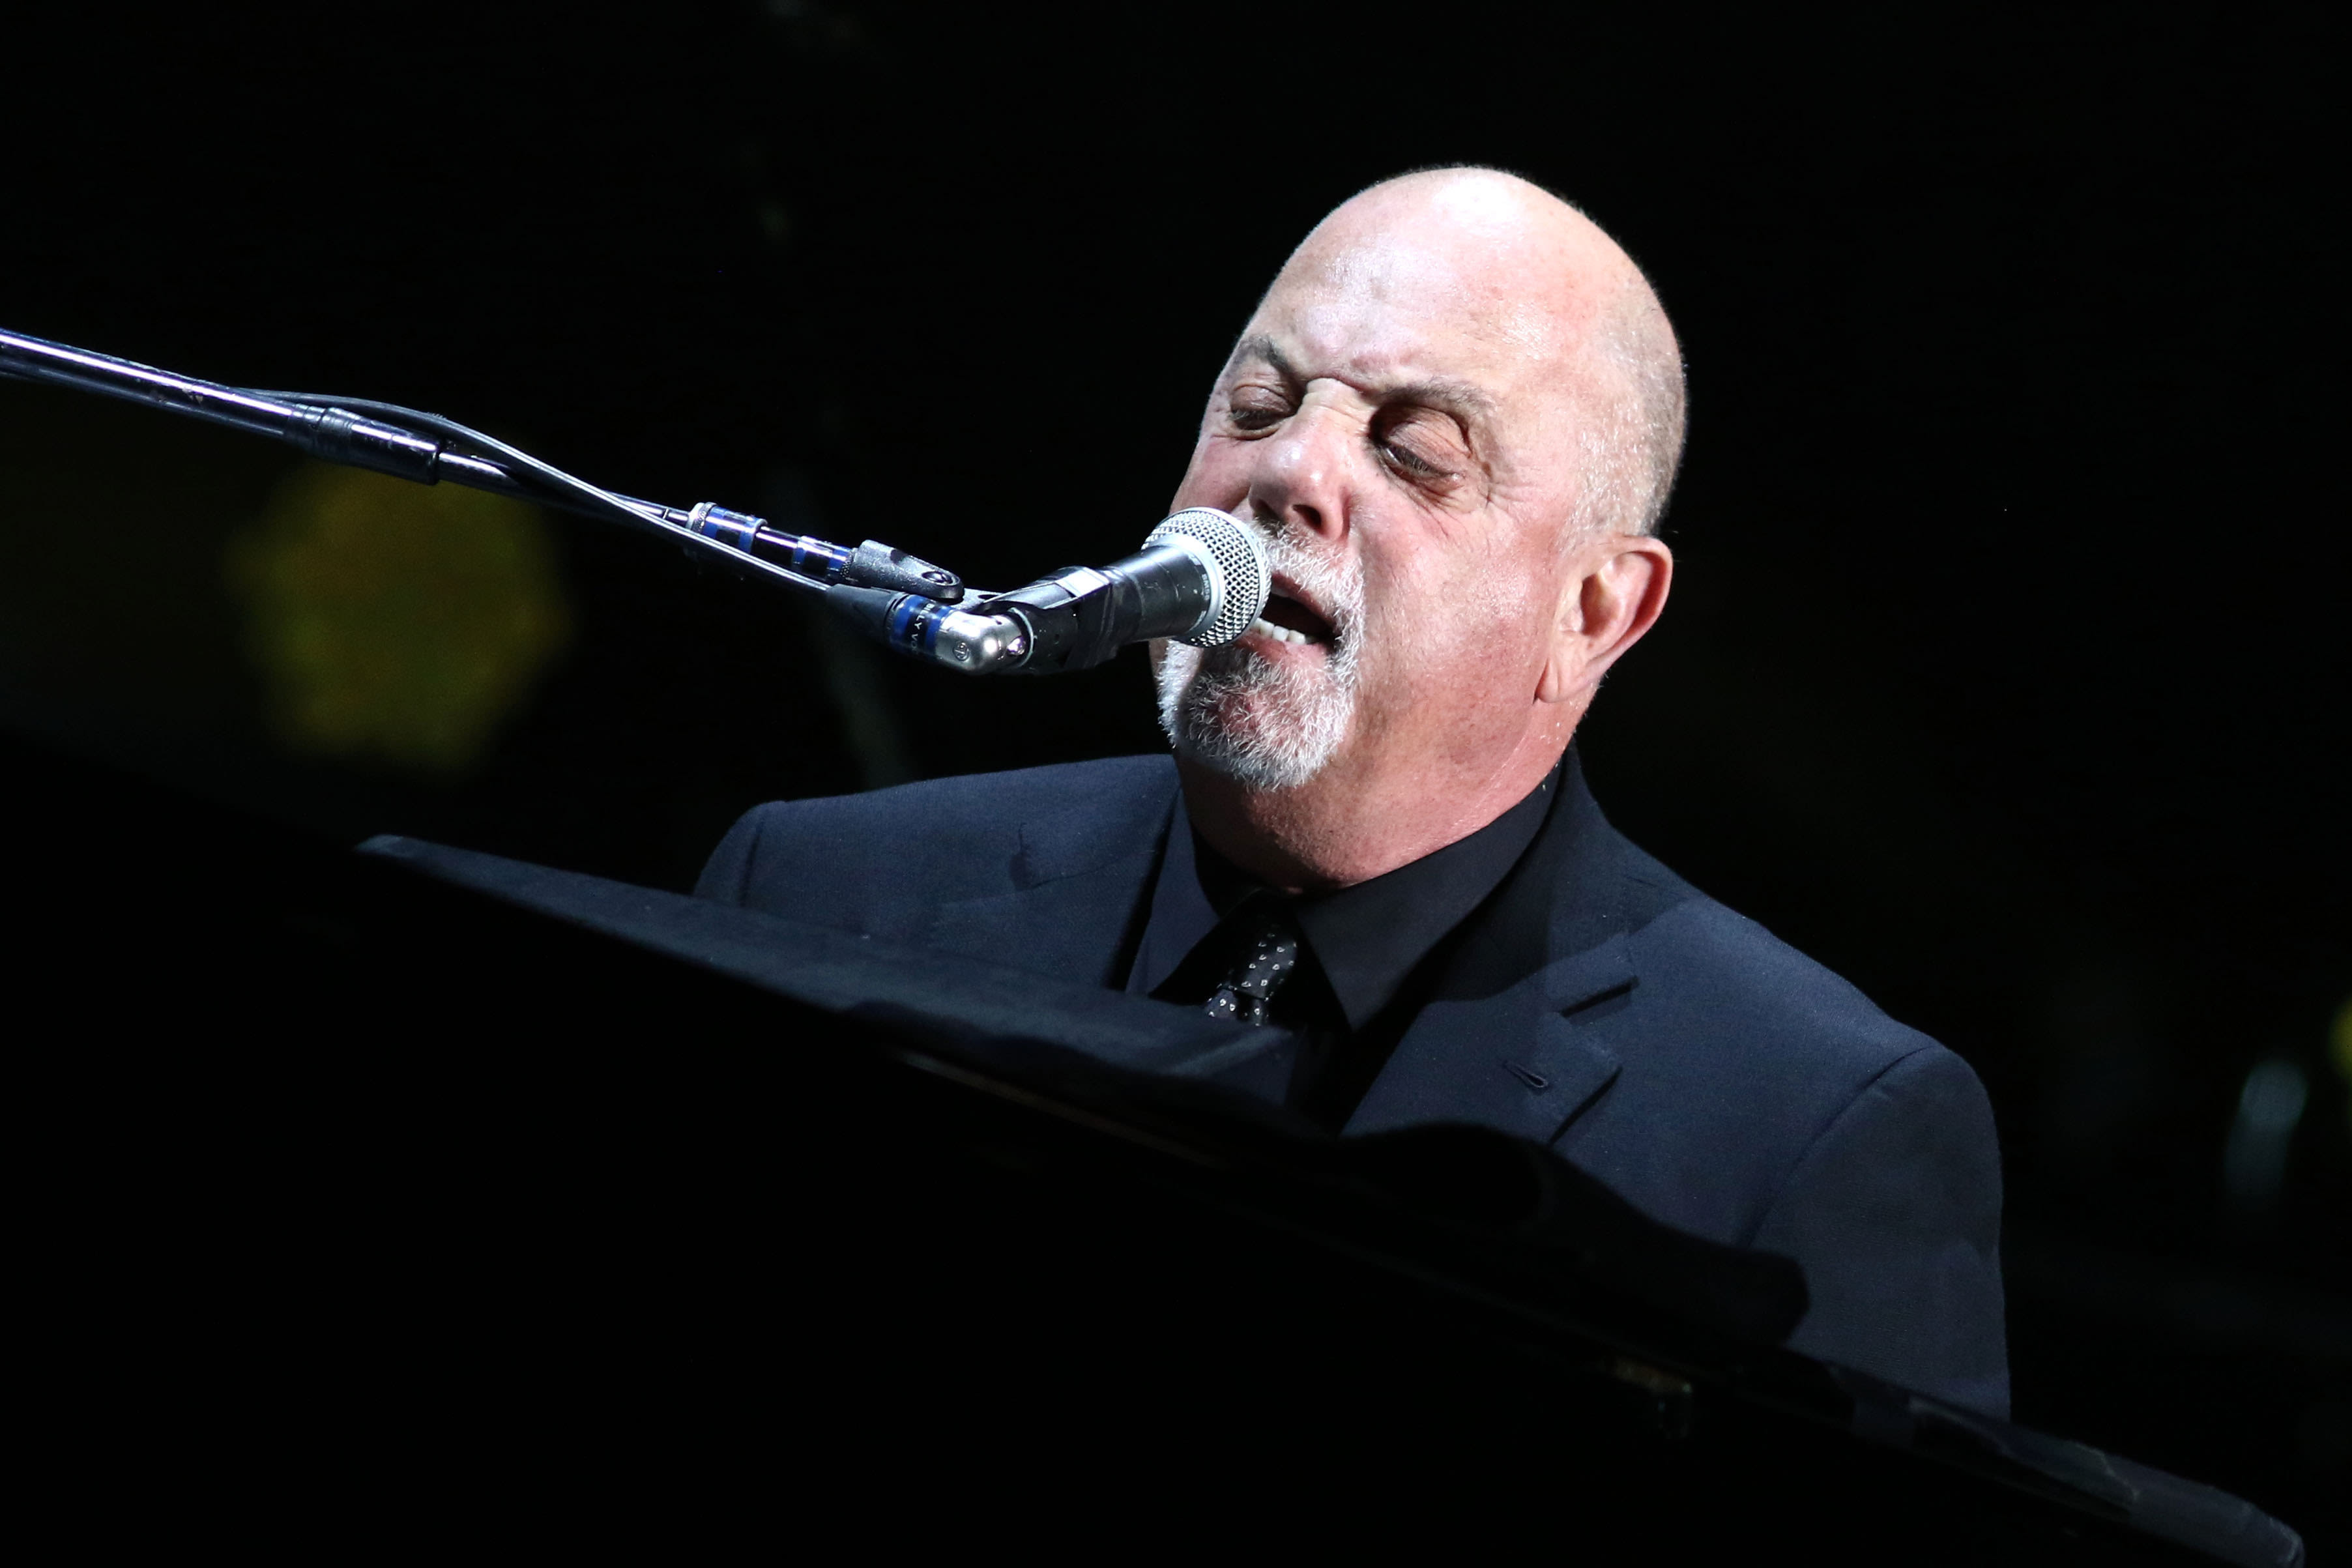 Billy joel t8j6yv